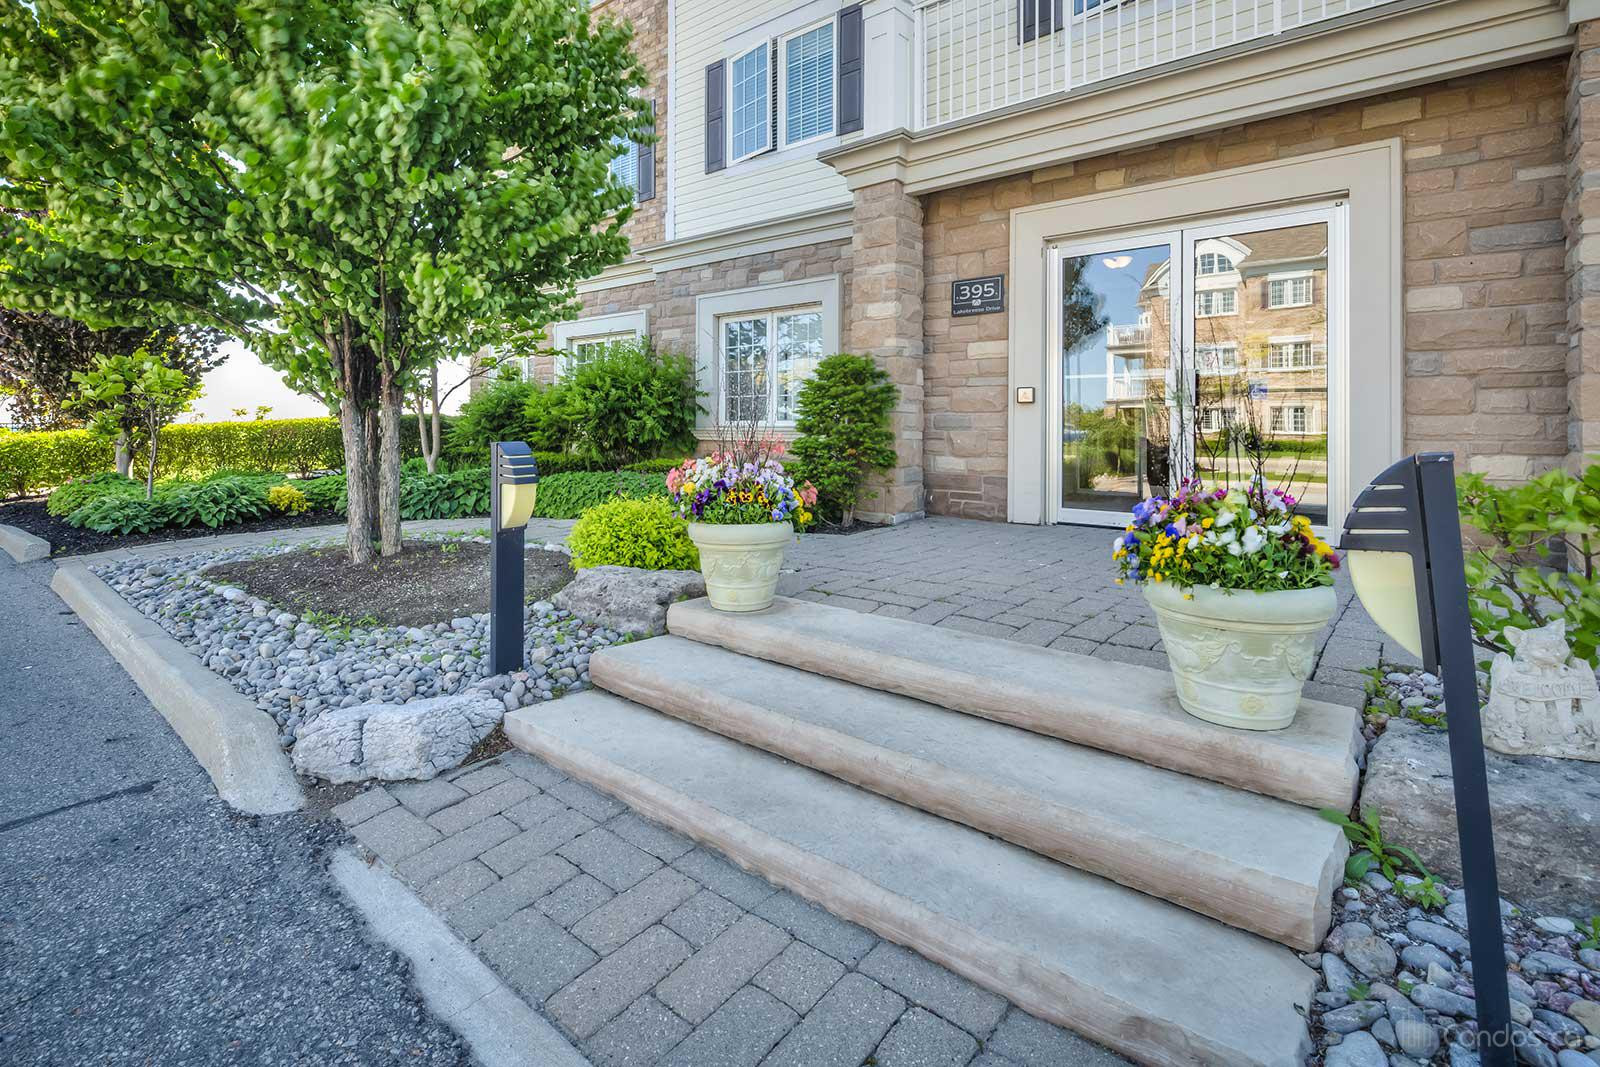 Coastal Villas at 395 Lakebreeze Dr, Clarington 0